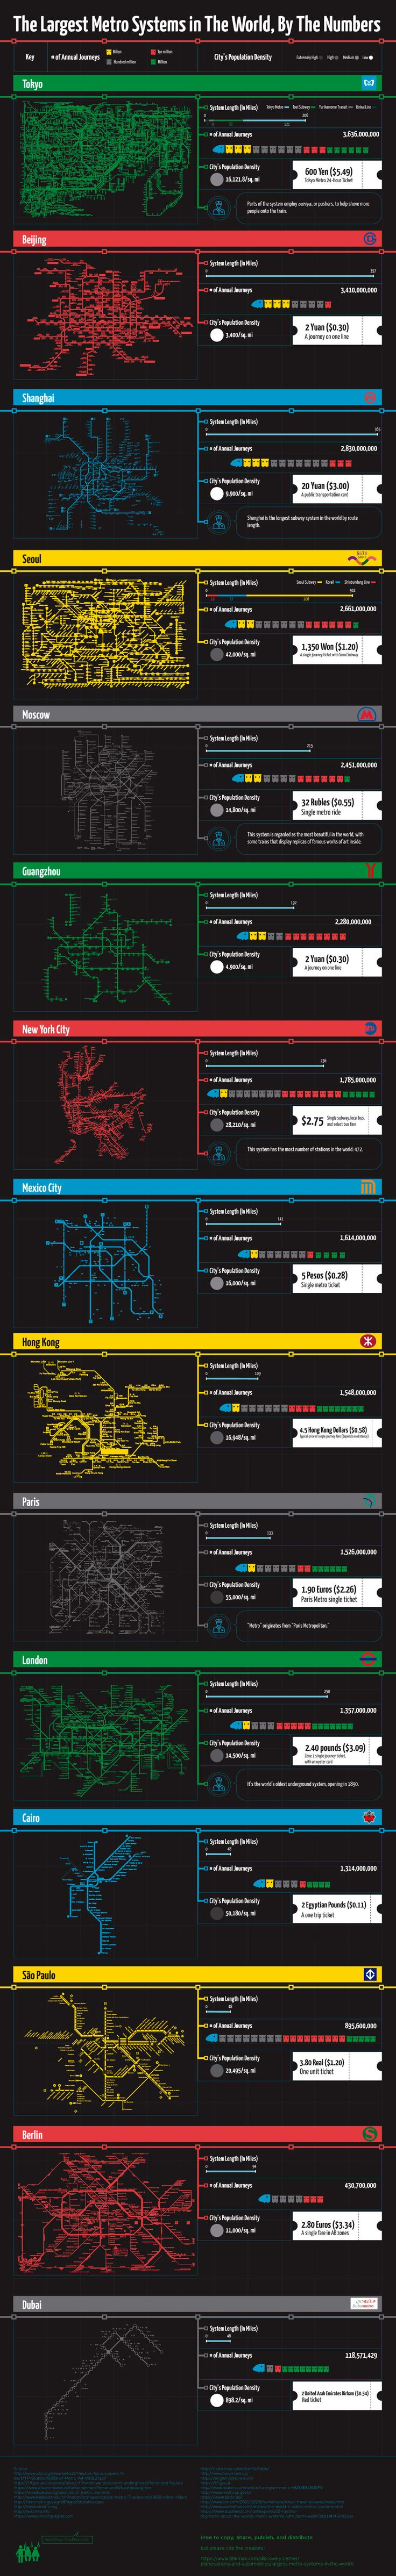 The largest metro systems in the world ranked by number of annual journeys #infographic http://bit.ly/2mvUxoF